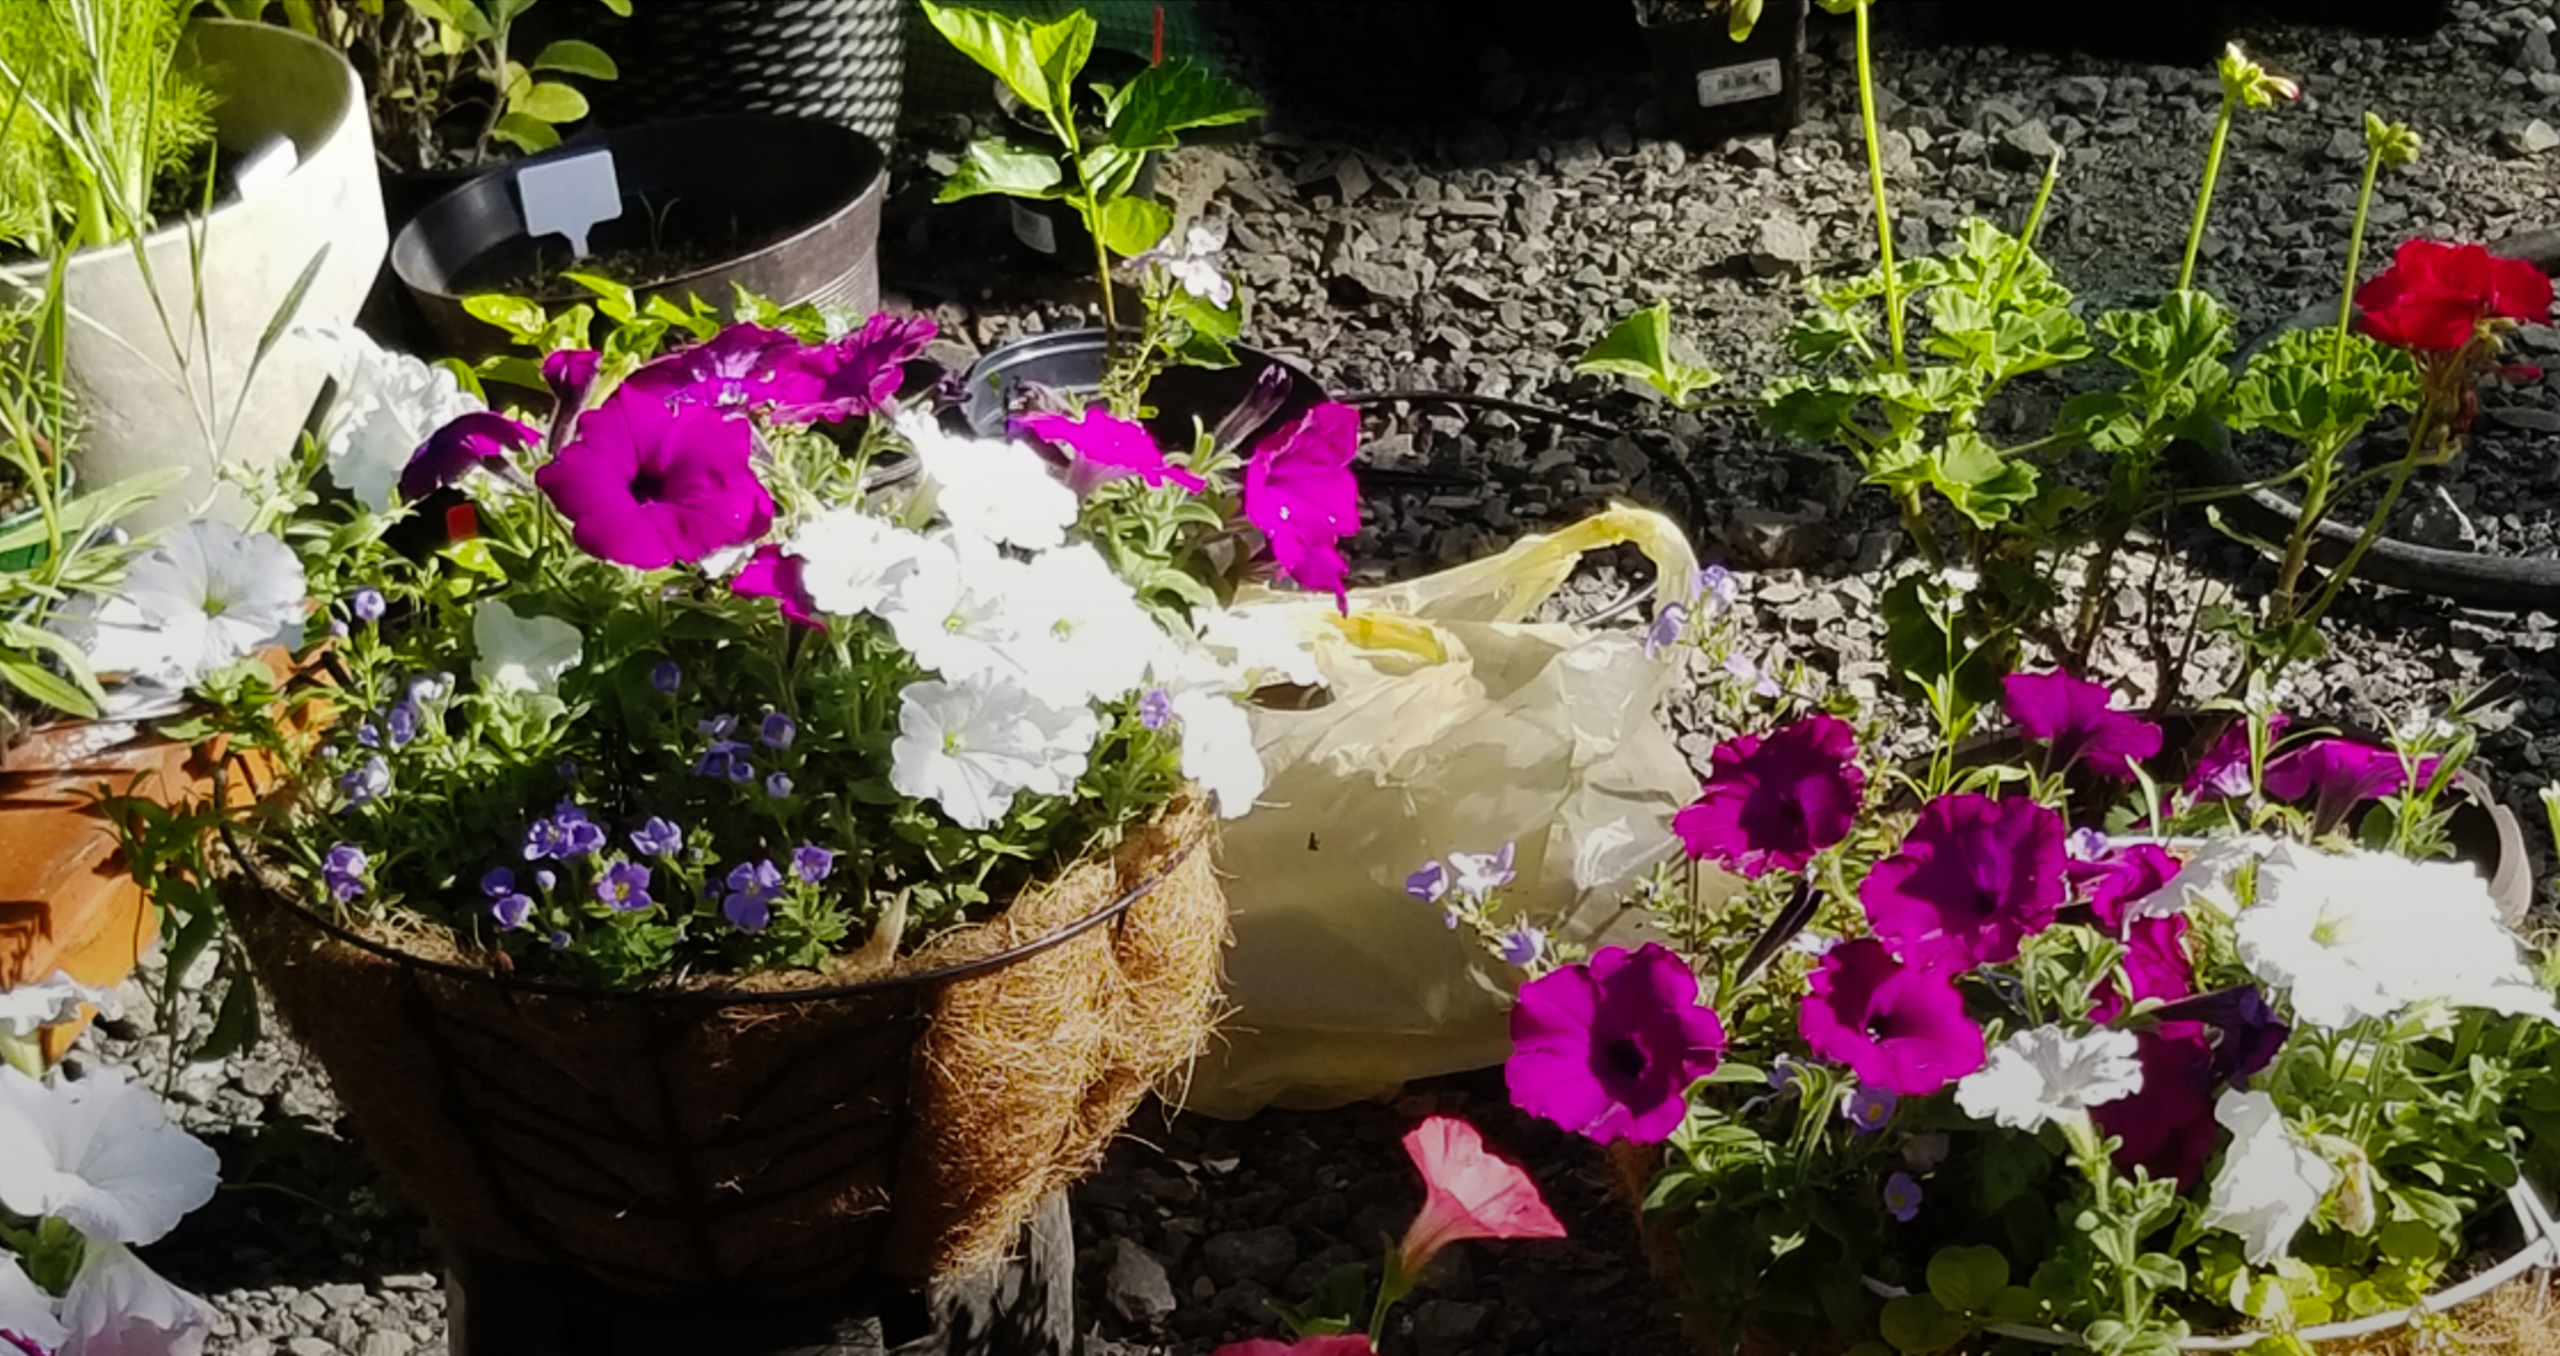 Purple and white flowers in pots on the ground.